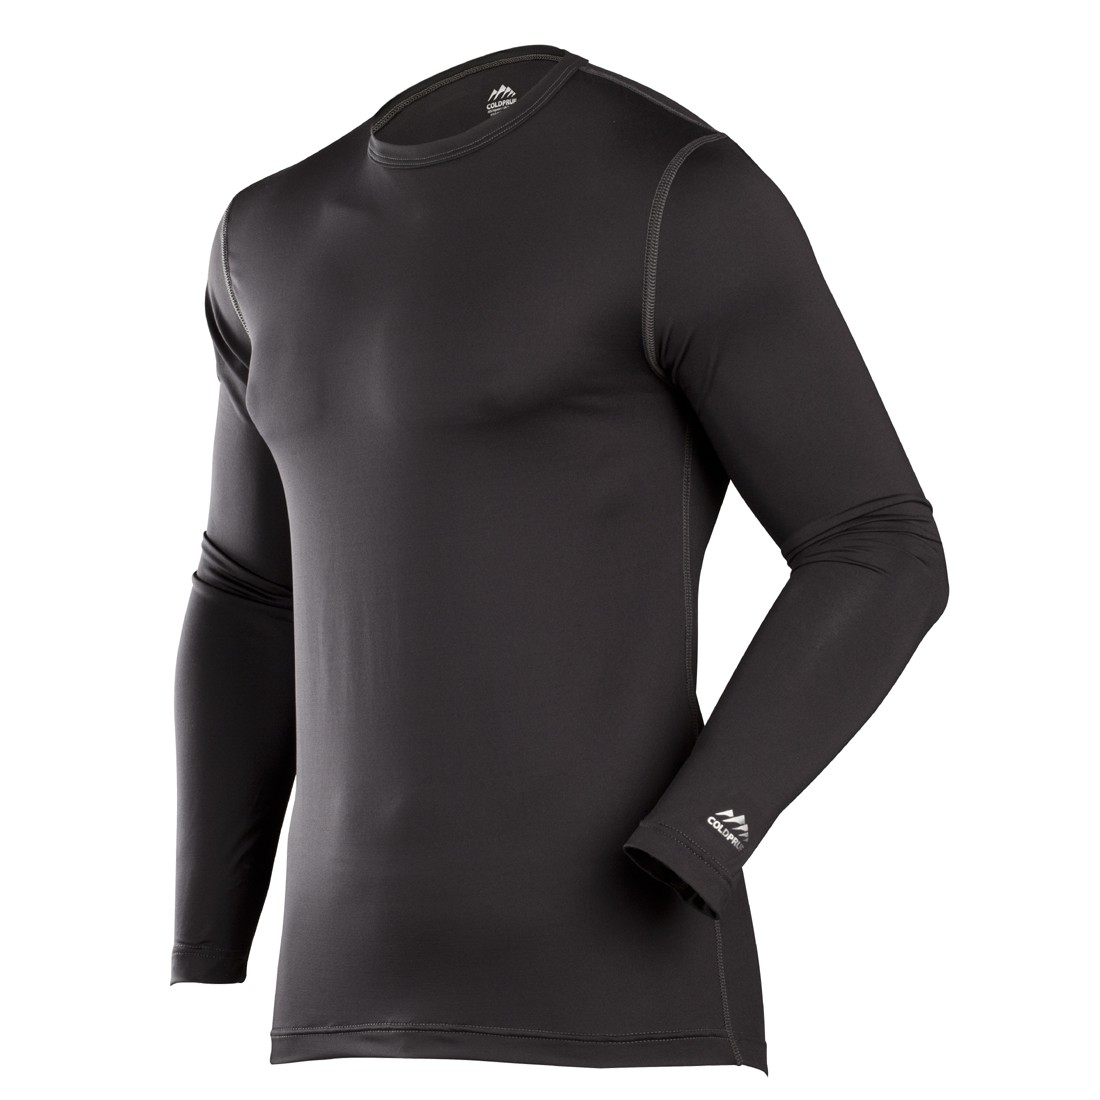 coldpruf premium performance top